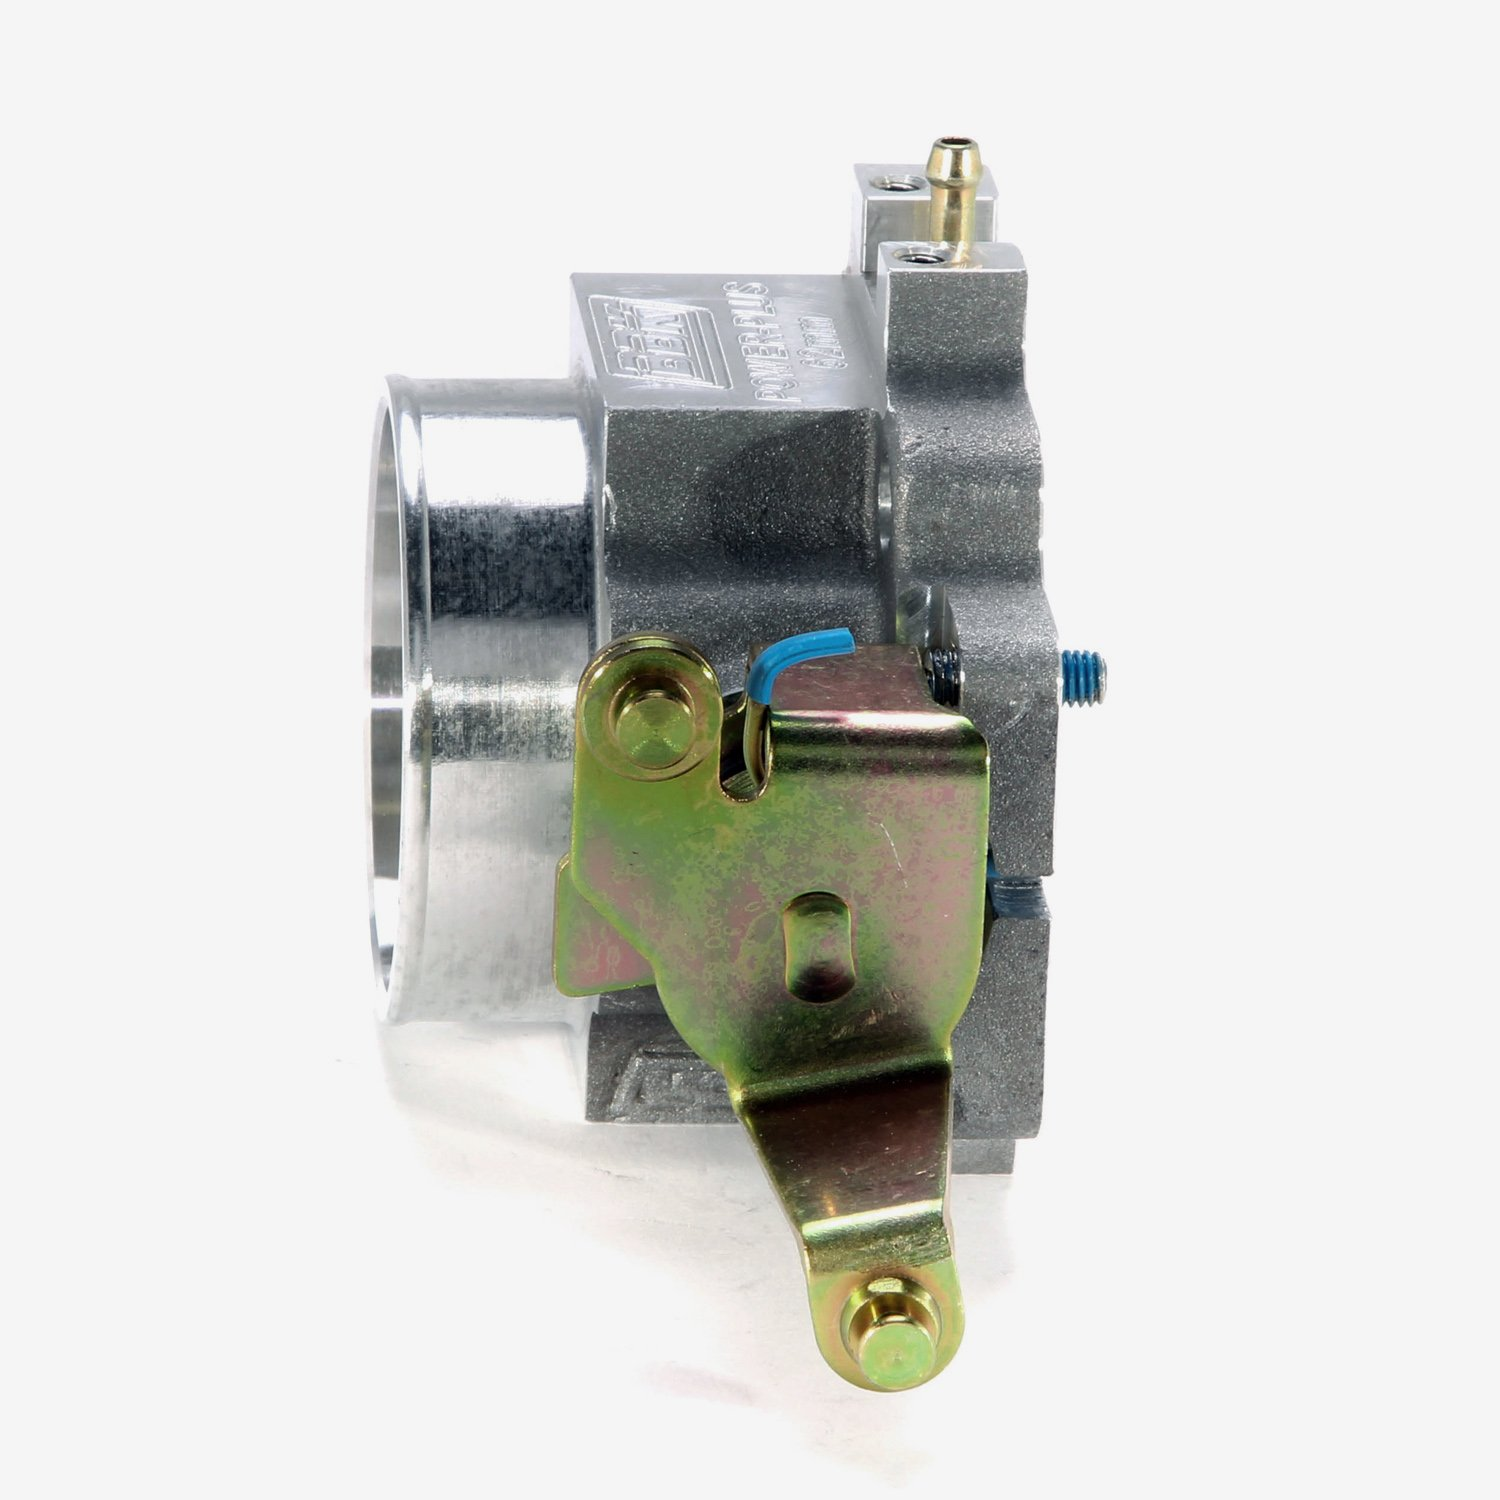 BBK 1724 62mm Throttle Body - High Flow Power Plus Series for Jeep 4.0L by BBK Performance (Image #4)